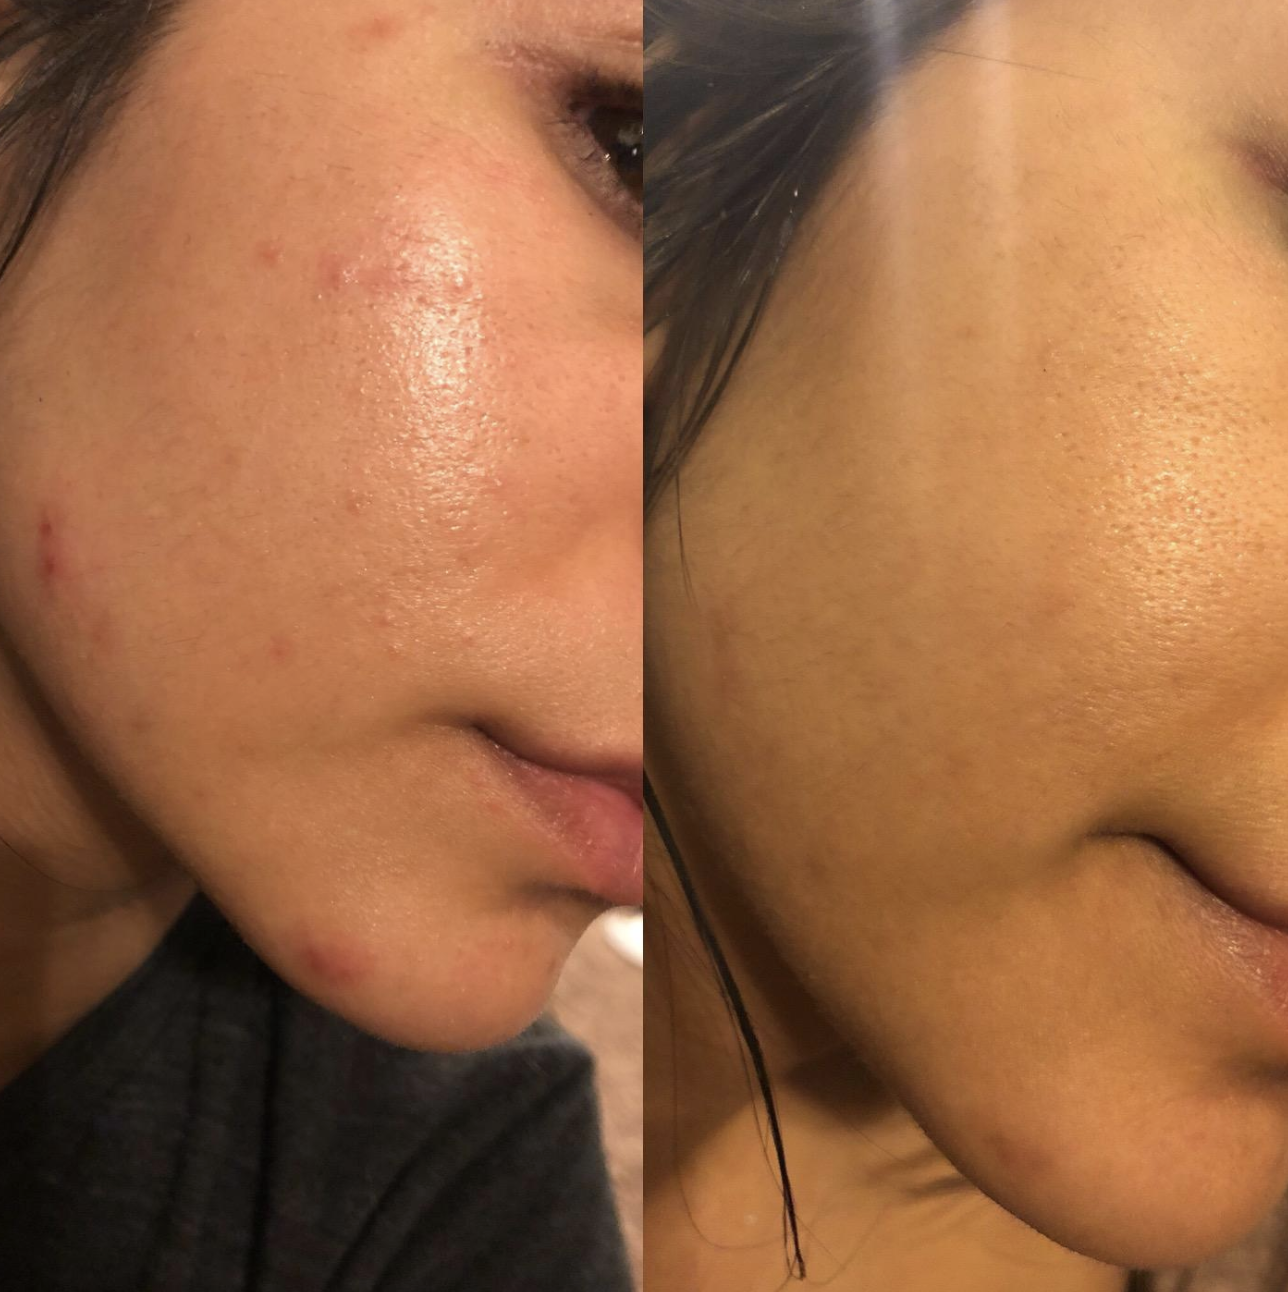 reviewer's before and after pic with the before having acne and scarring and the after pic showing almost clear skin